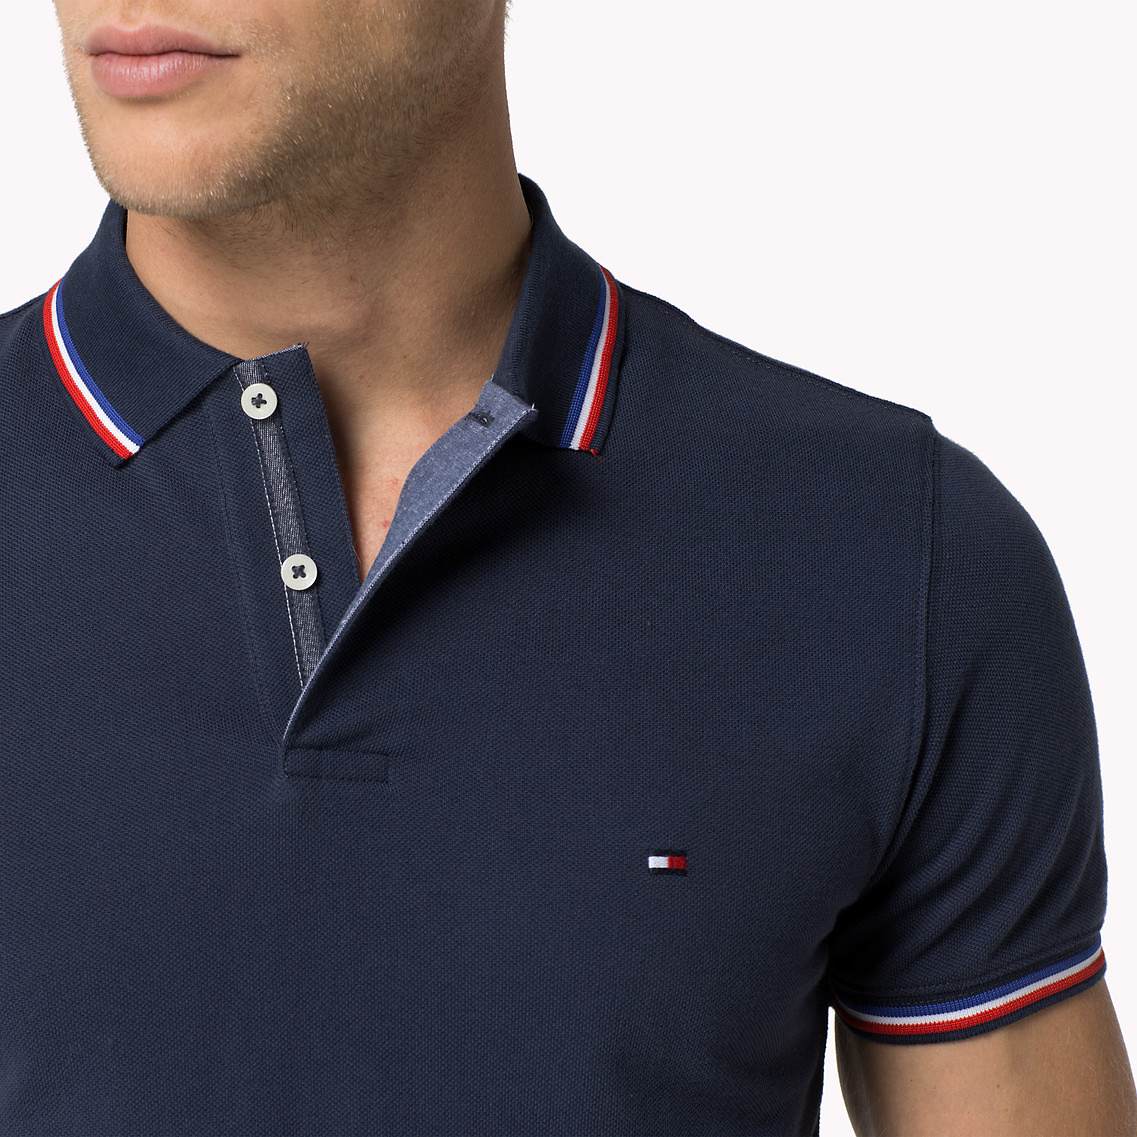 48fb5c8dee5 Tommy Hilfiger Cotton Slim Fit Polo in Blue for Men - Lyst